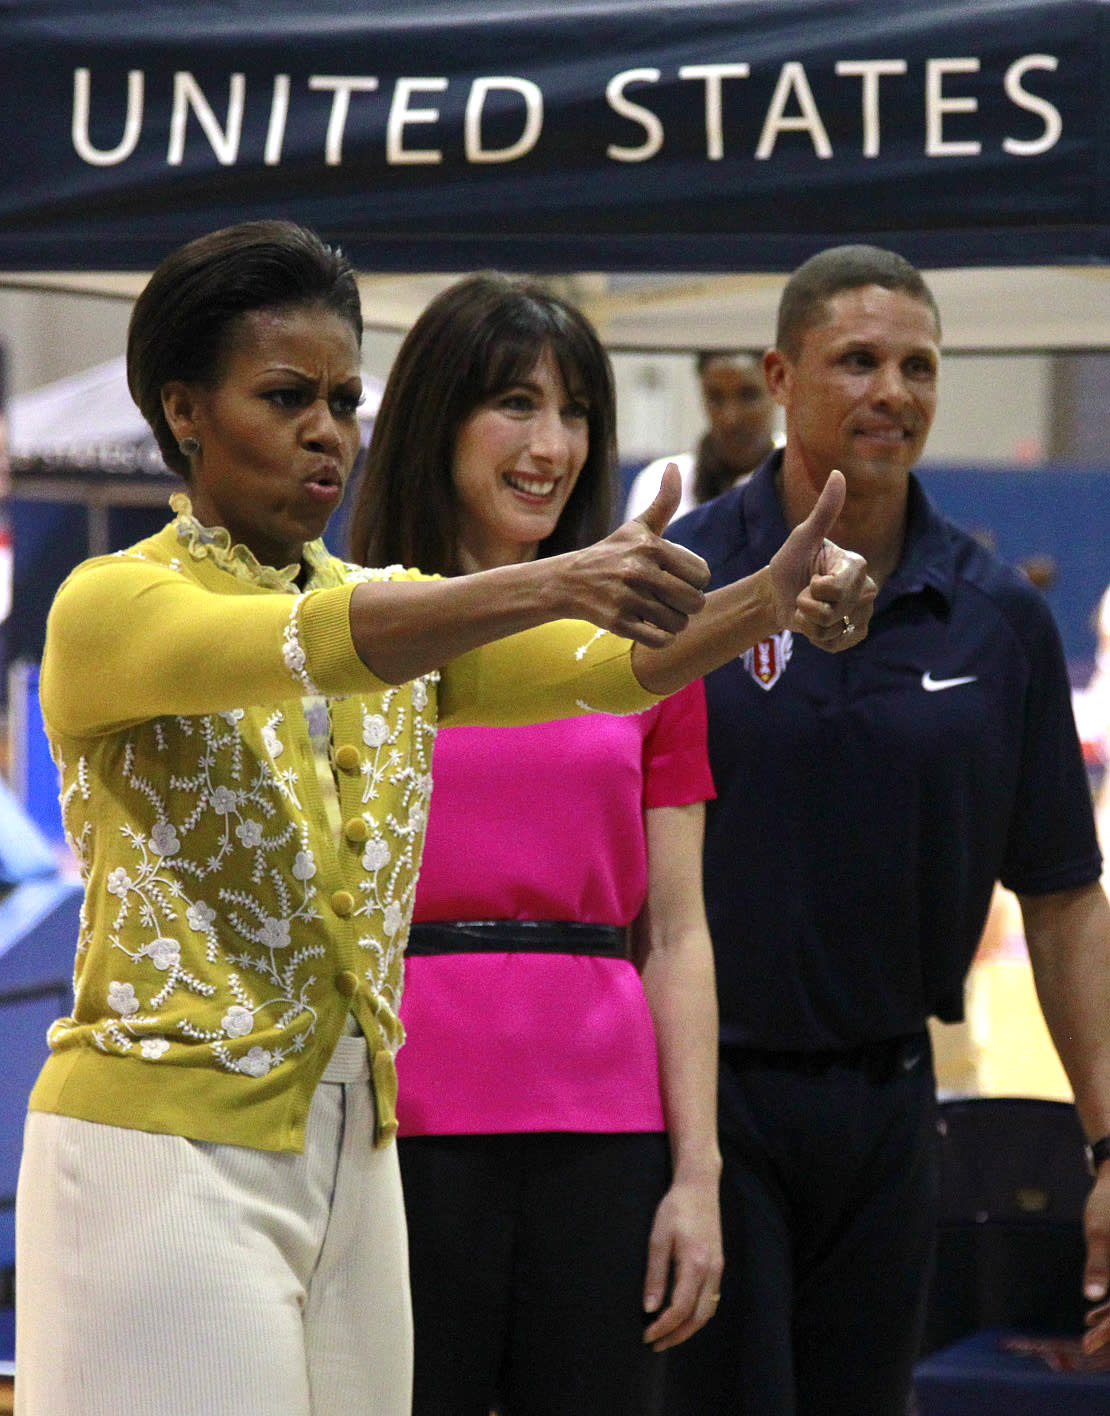 First lady Michelle Obama and Samantha Cameron, wife of British Primer Minister David Cameron, join with students participating in a mini-Olympics competition in celebration of the 2012 London Summer Olympics and Mrs. Obama's Let's Move! initiative, Tuesday, March 13, 2012 in Washington. At right is American decathlete and Olympic gold-medal winner Dan O'Brien. (AP Photo/Haraz N. Ghanbari)